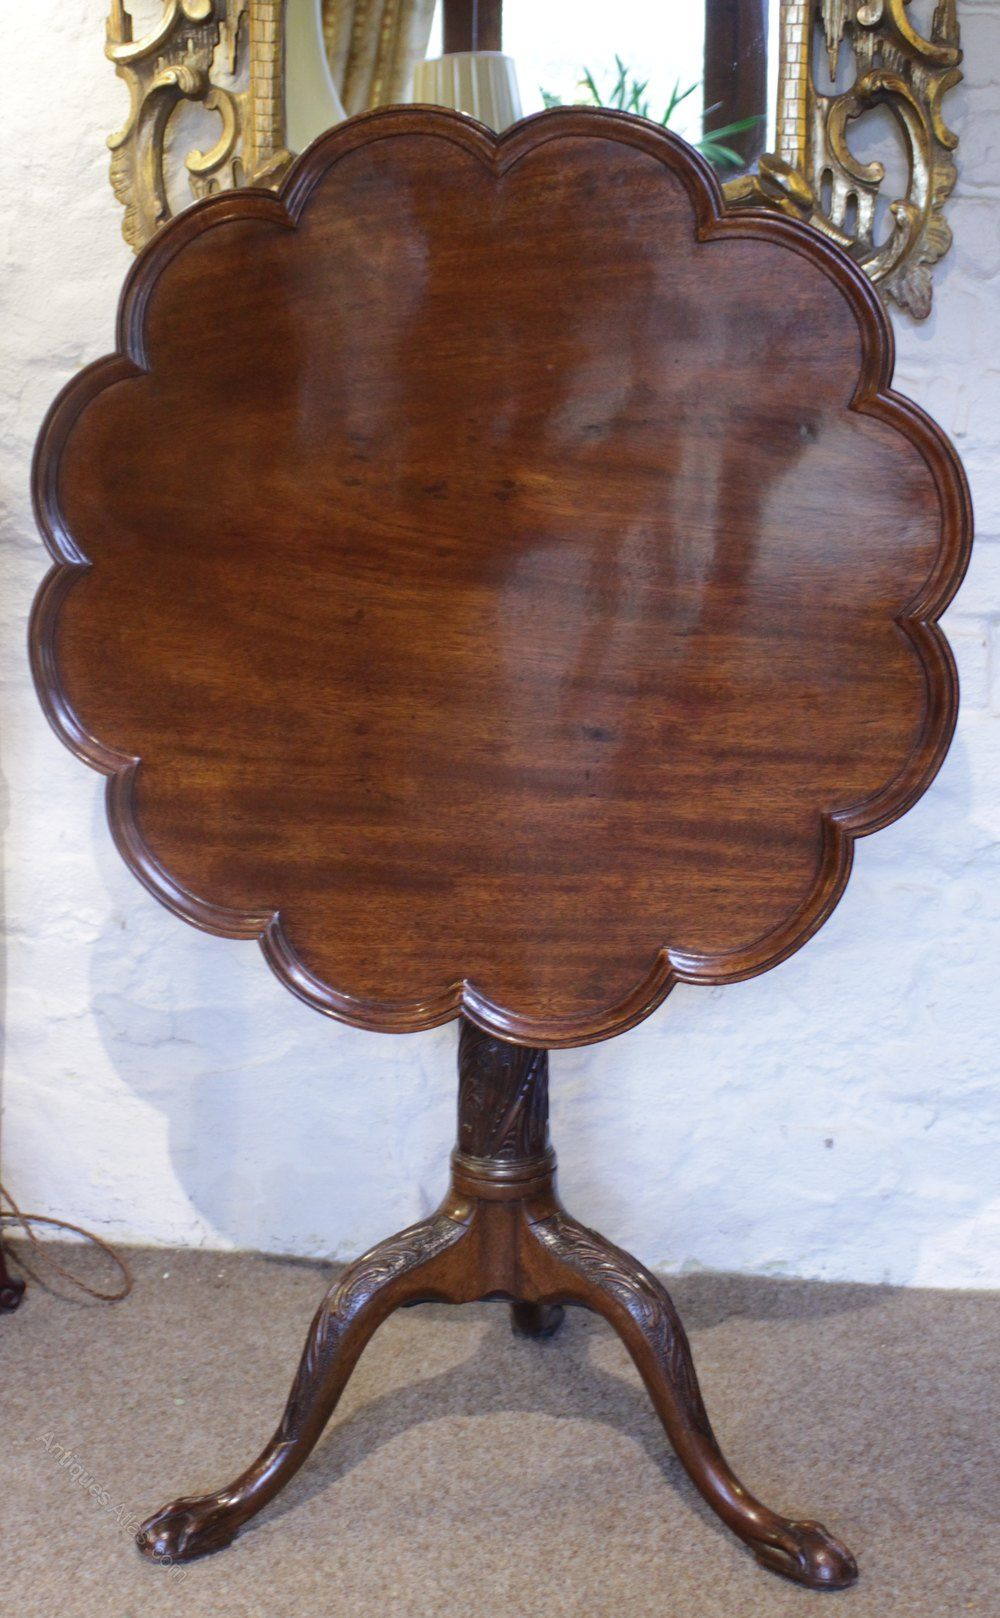 Mahogany Tilt Top Table In 2020 Antique Furniture For Sale Metal Chairs Furniture